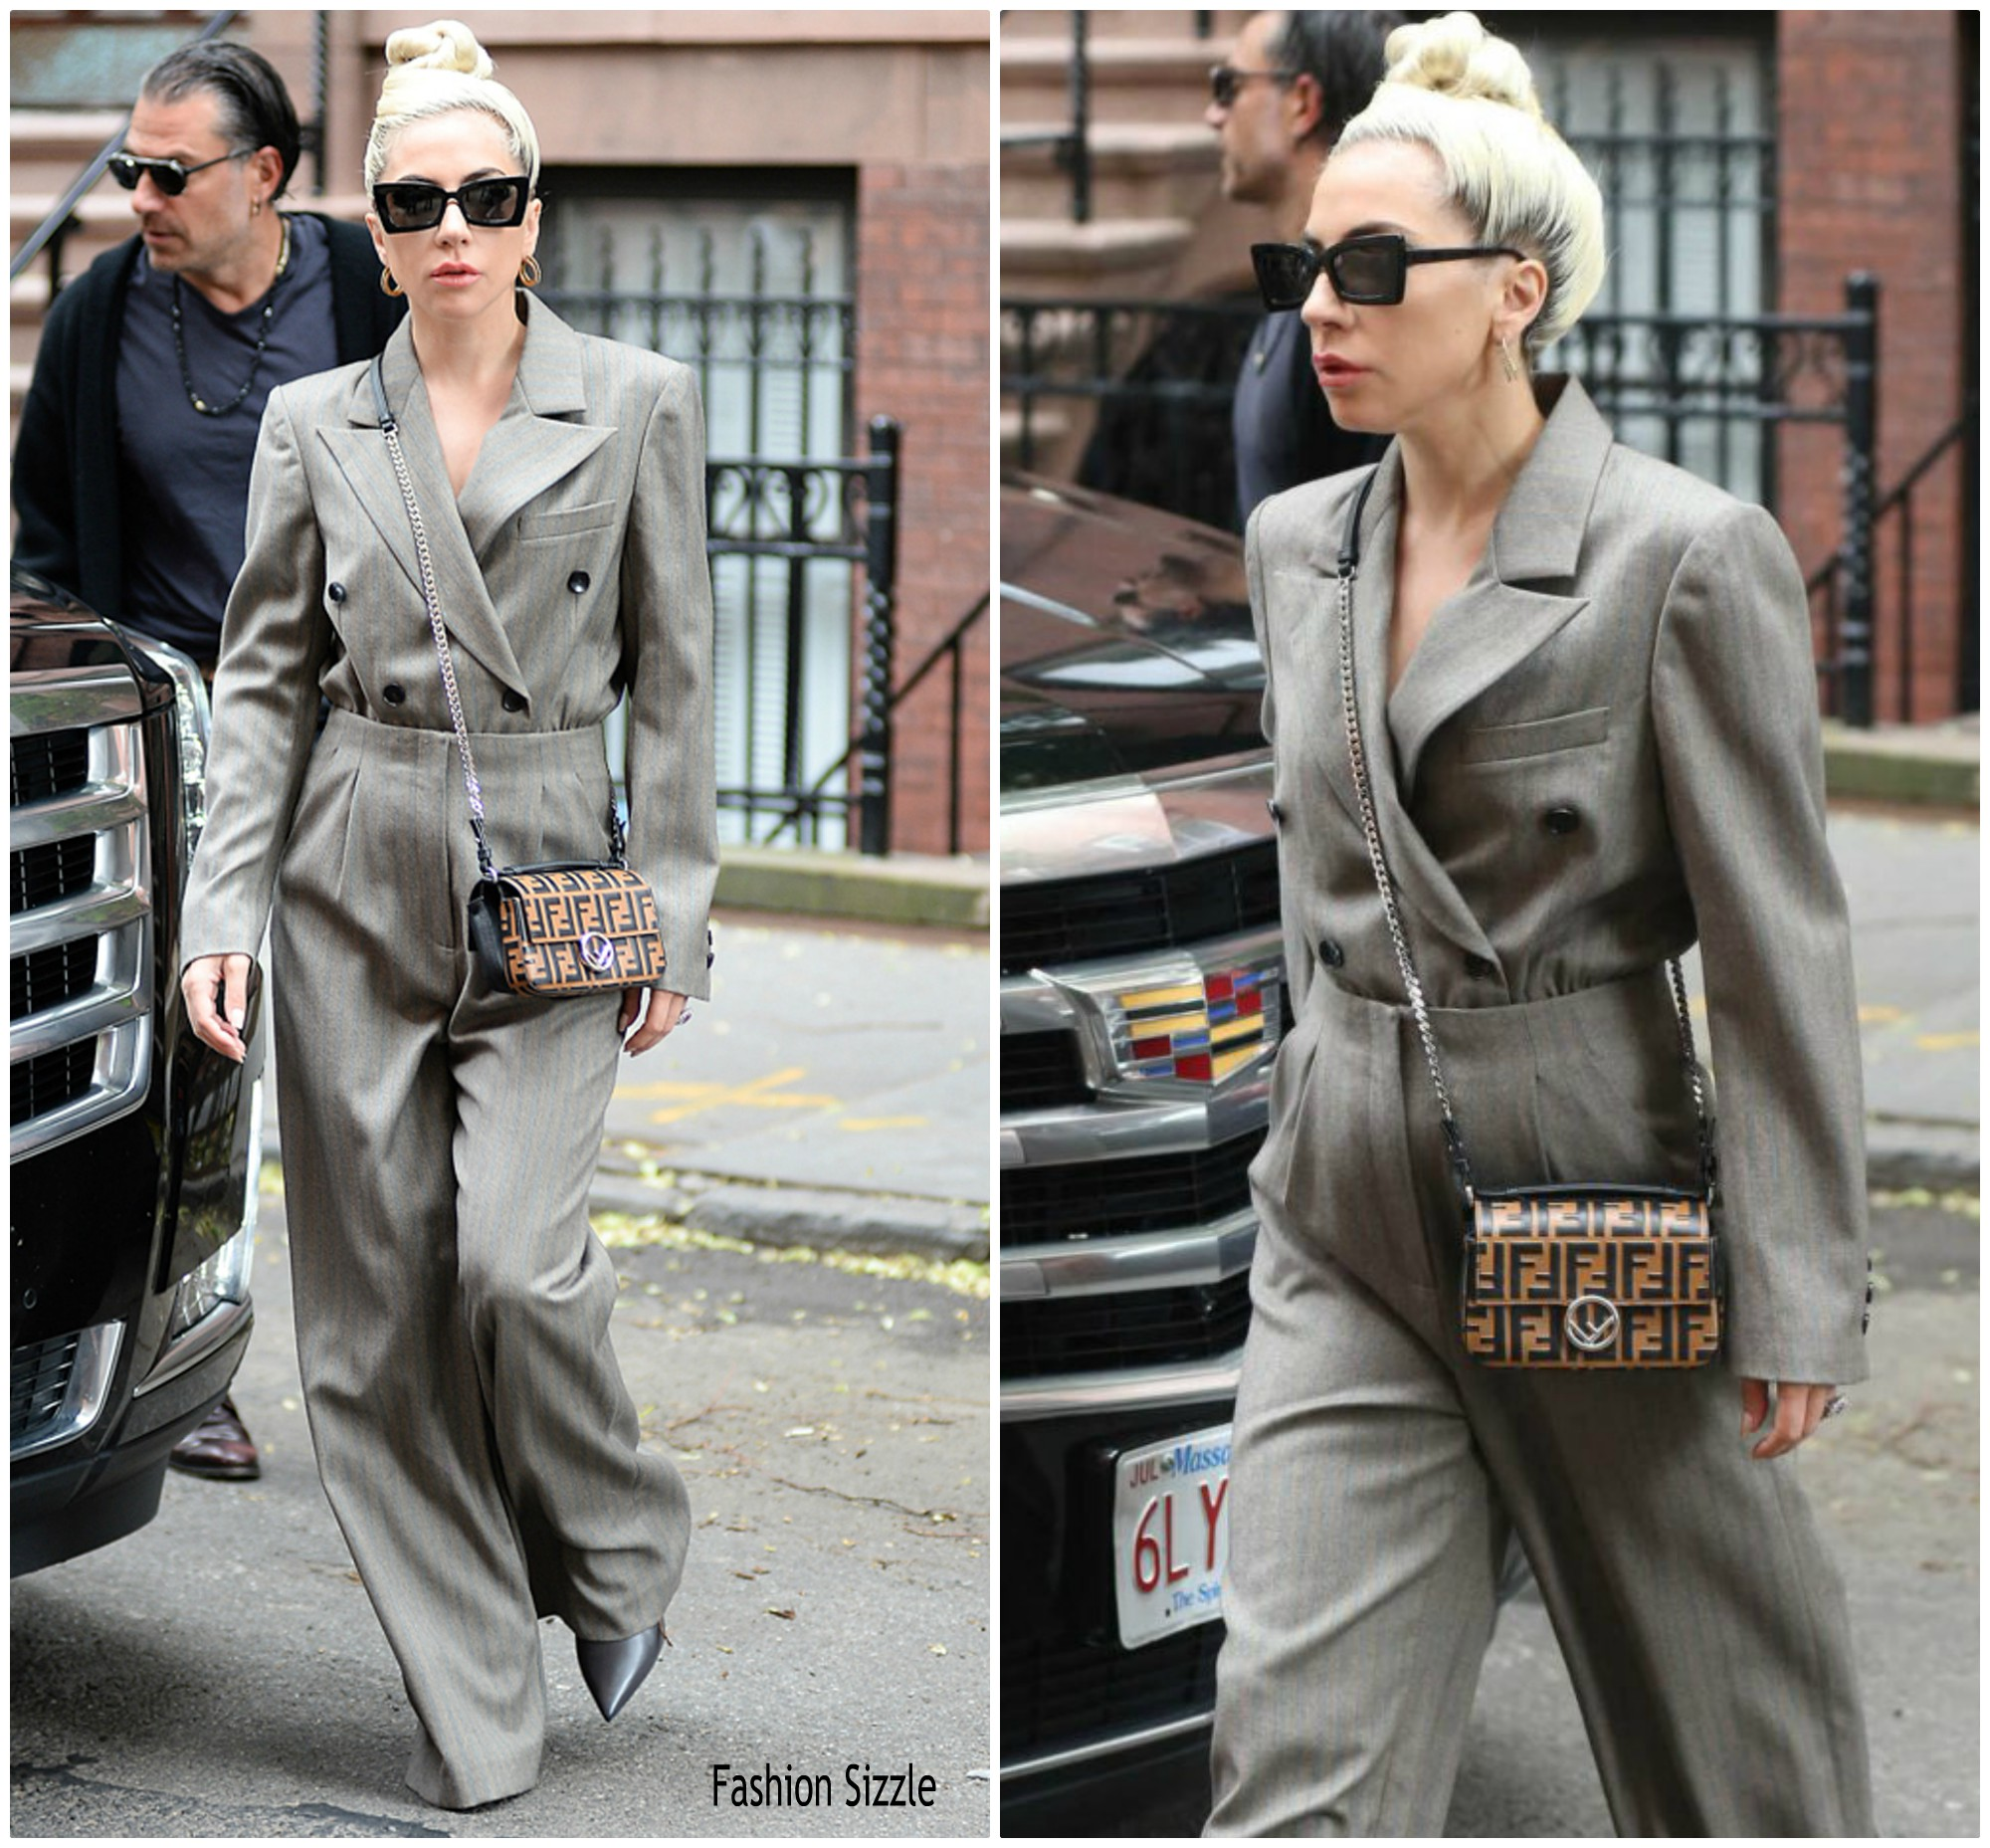 lady-gaga-arrives-at-electric-lady-studios-in-new-york